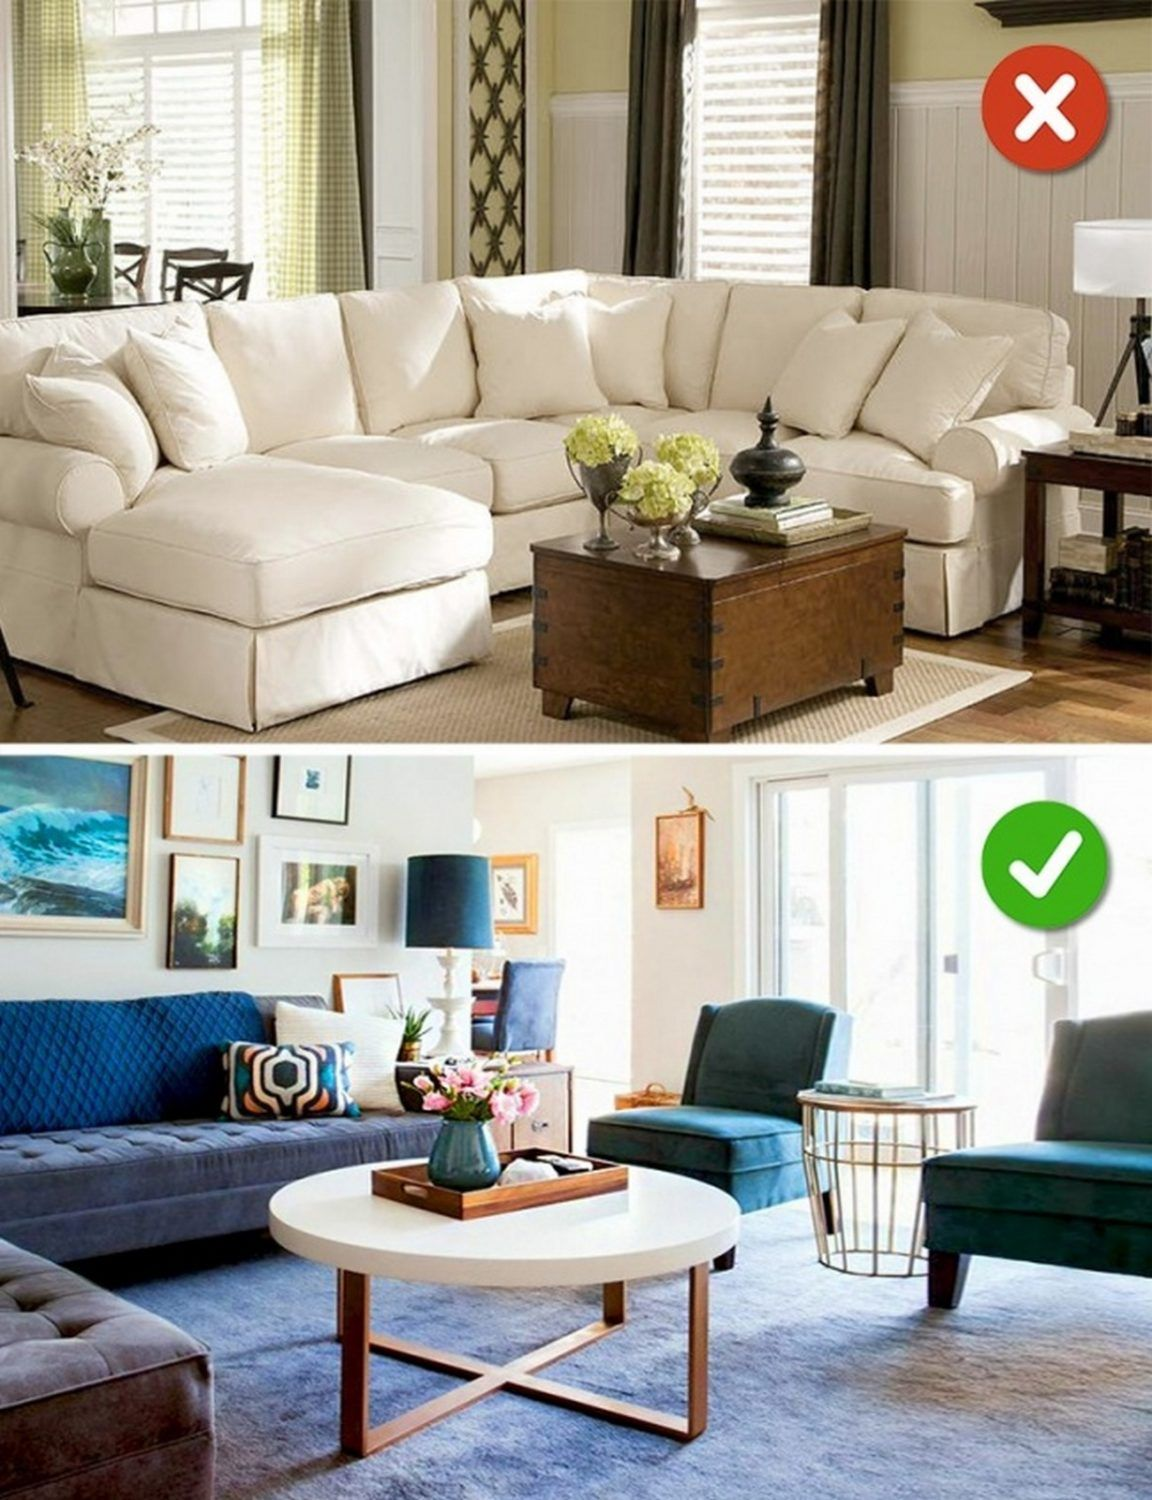 6 Living Room Design Mistakes and Solutions on How to Fix Them